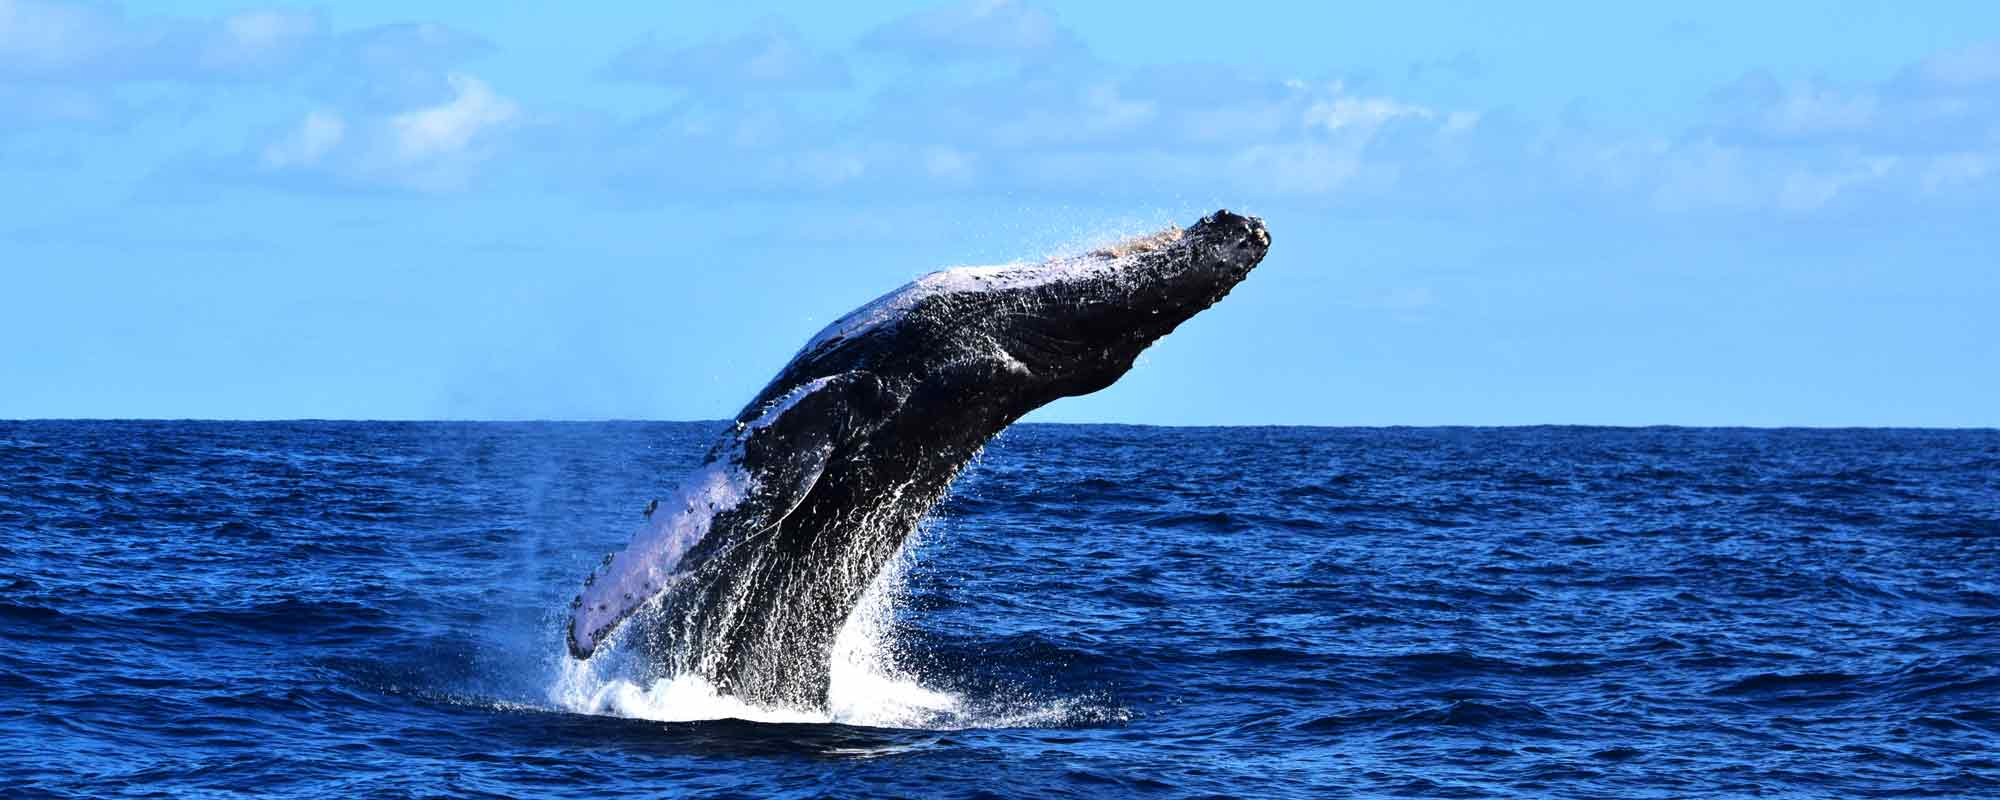 6370d552363 Cabo San Lucas Group Whale Watching Tours - Whale Watch Cabo Tours